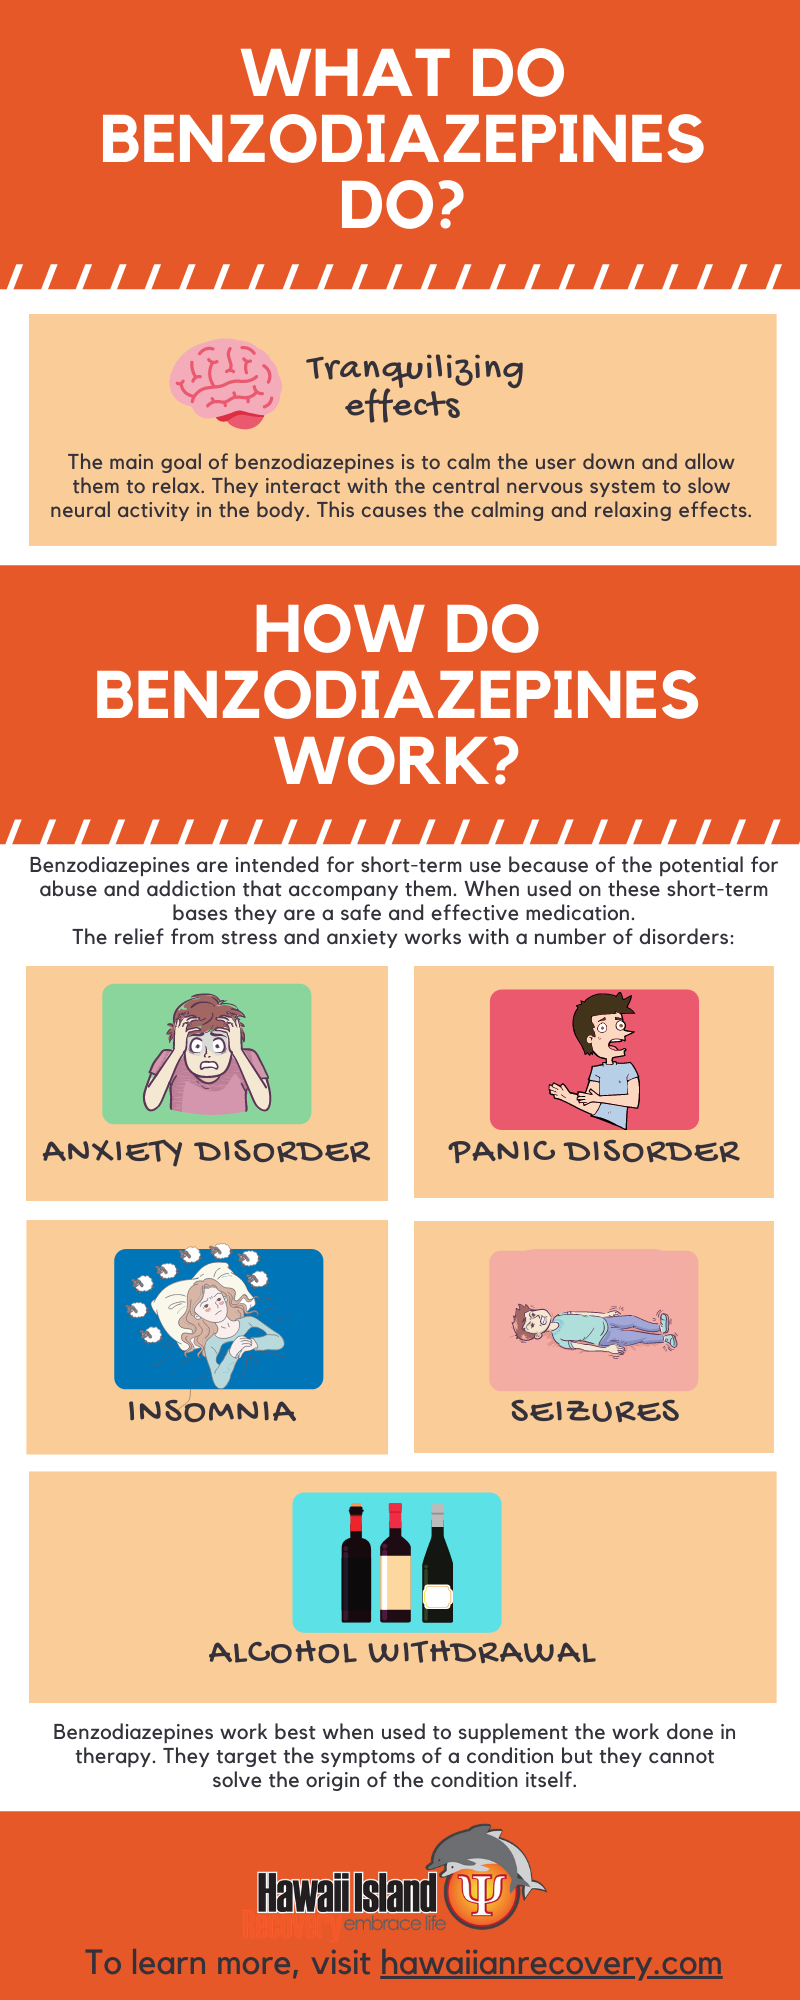 What do Benzodiazepines